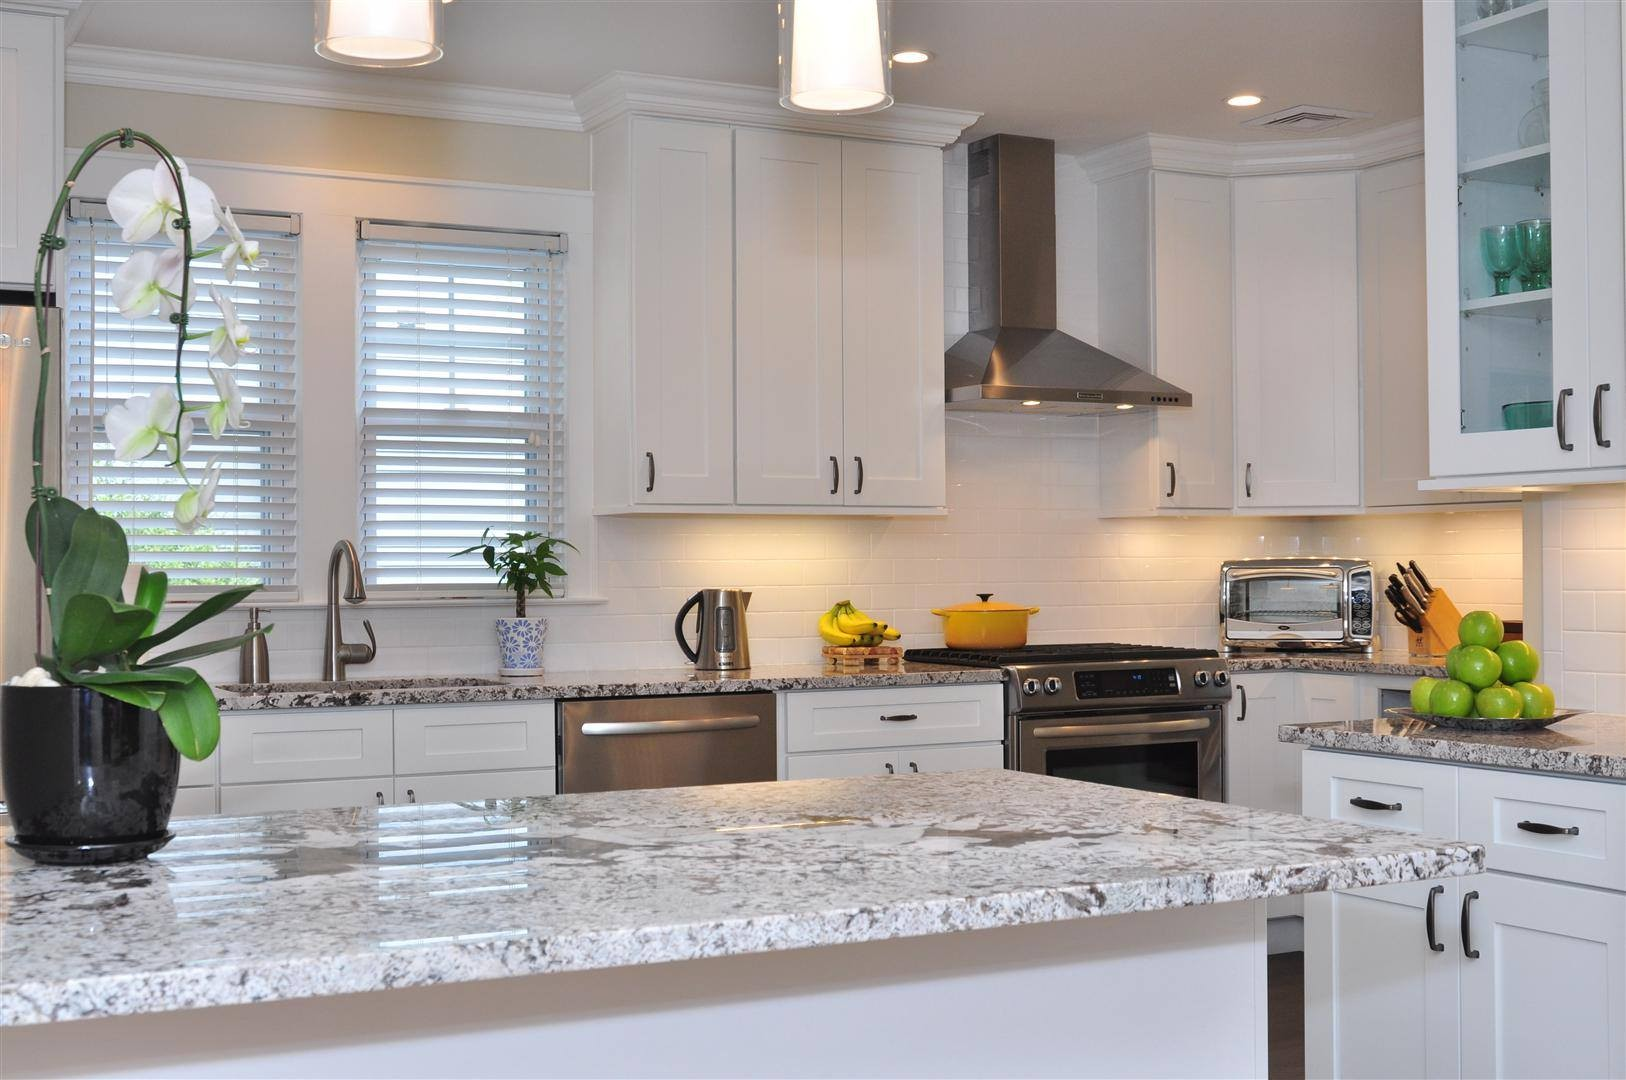 White Kitchen Granite Countertops Granite Prefab Bathroom Kitchen Stone Countertops